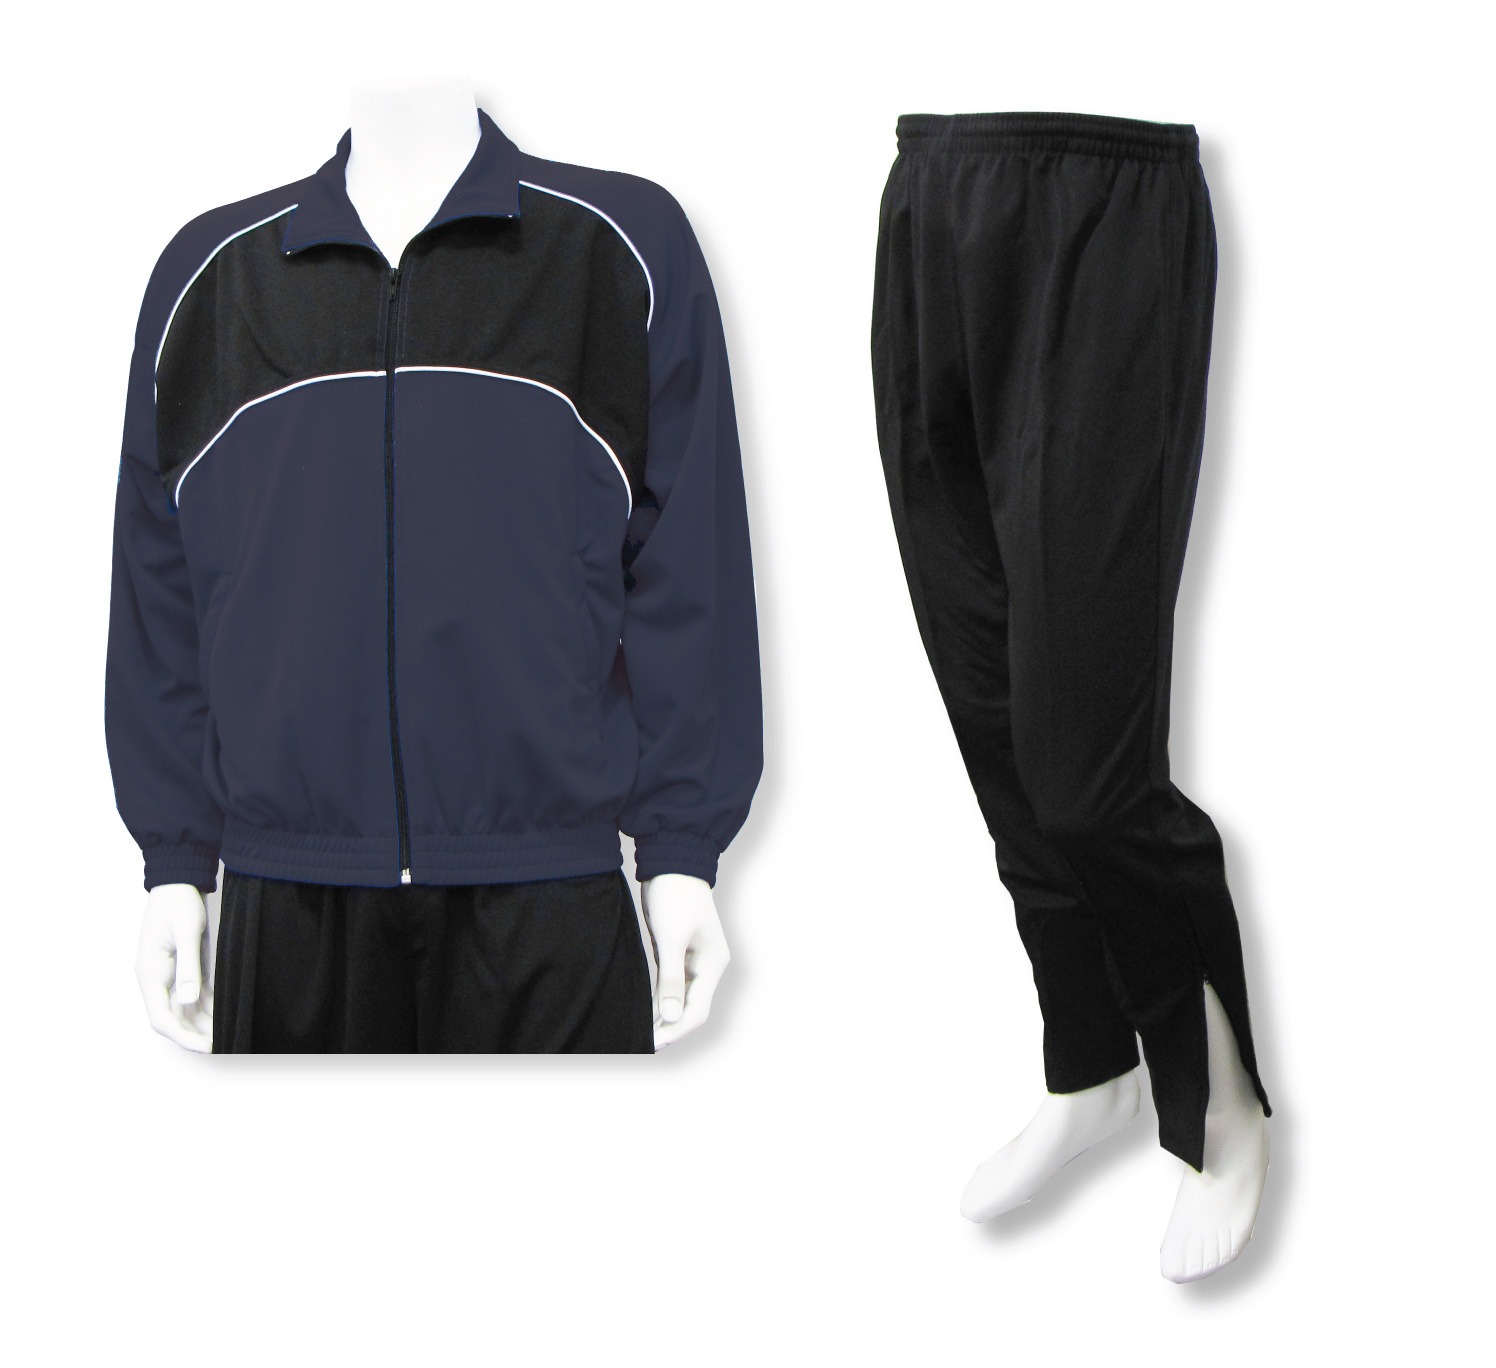 Crossfire soccer jacket and pant set in navy by Code Four Athletics